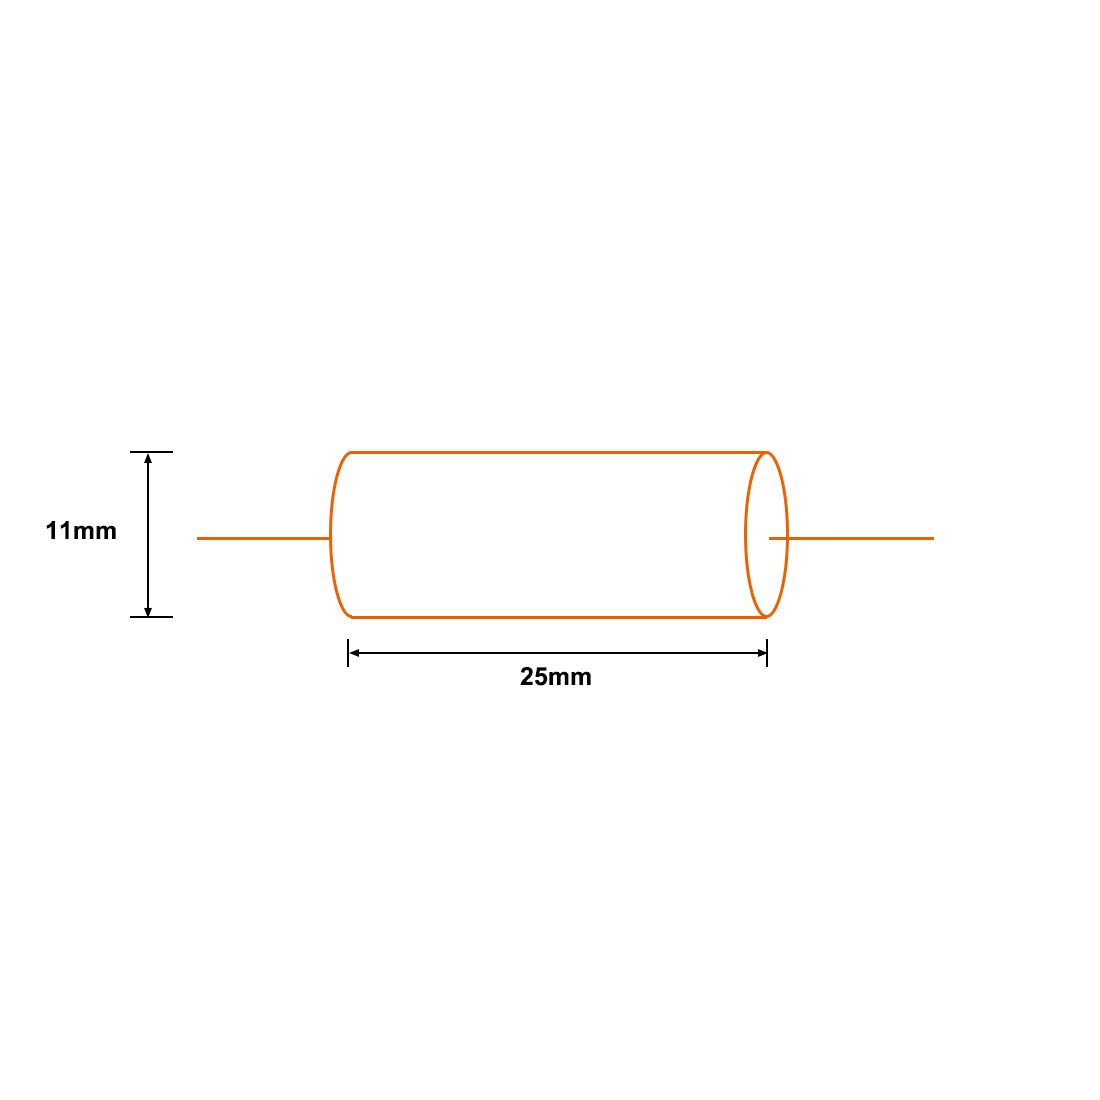 uxcell Film Capacitor 100V DC 3.0uF Round Axial Polypropylene Film Capacitor for Audio Divider Yellow